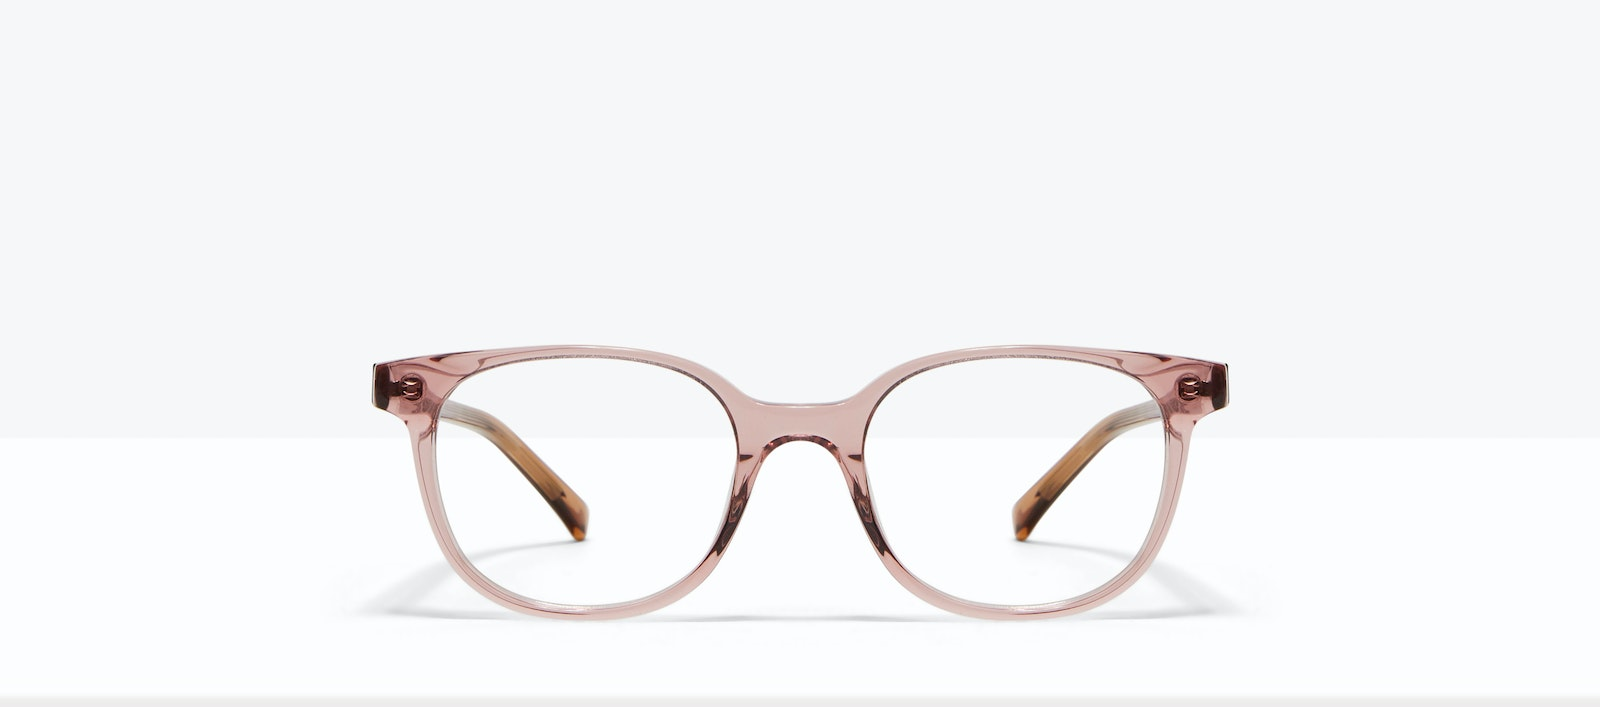 Affordable Fashion Glasses Square Eyeglasses Women Unique Rose Front